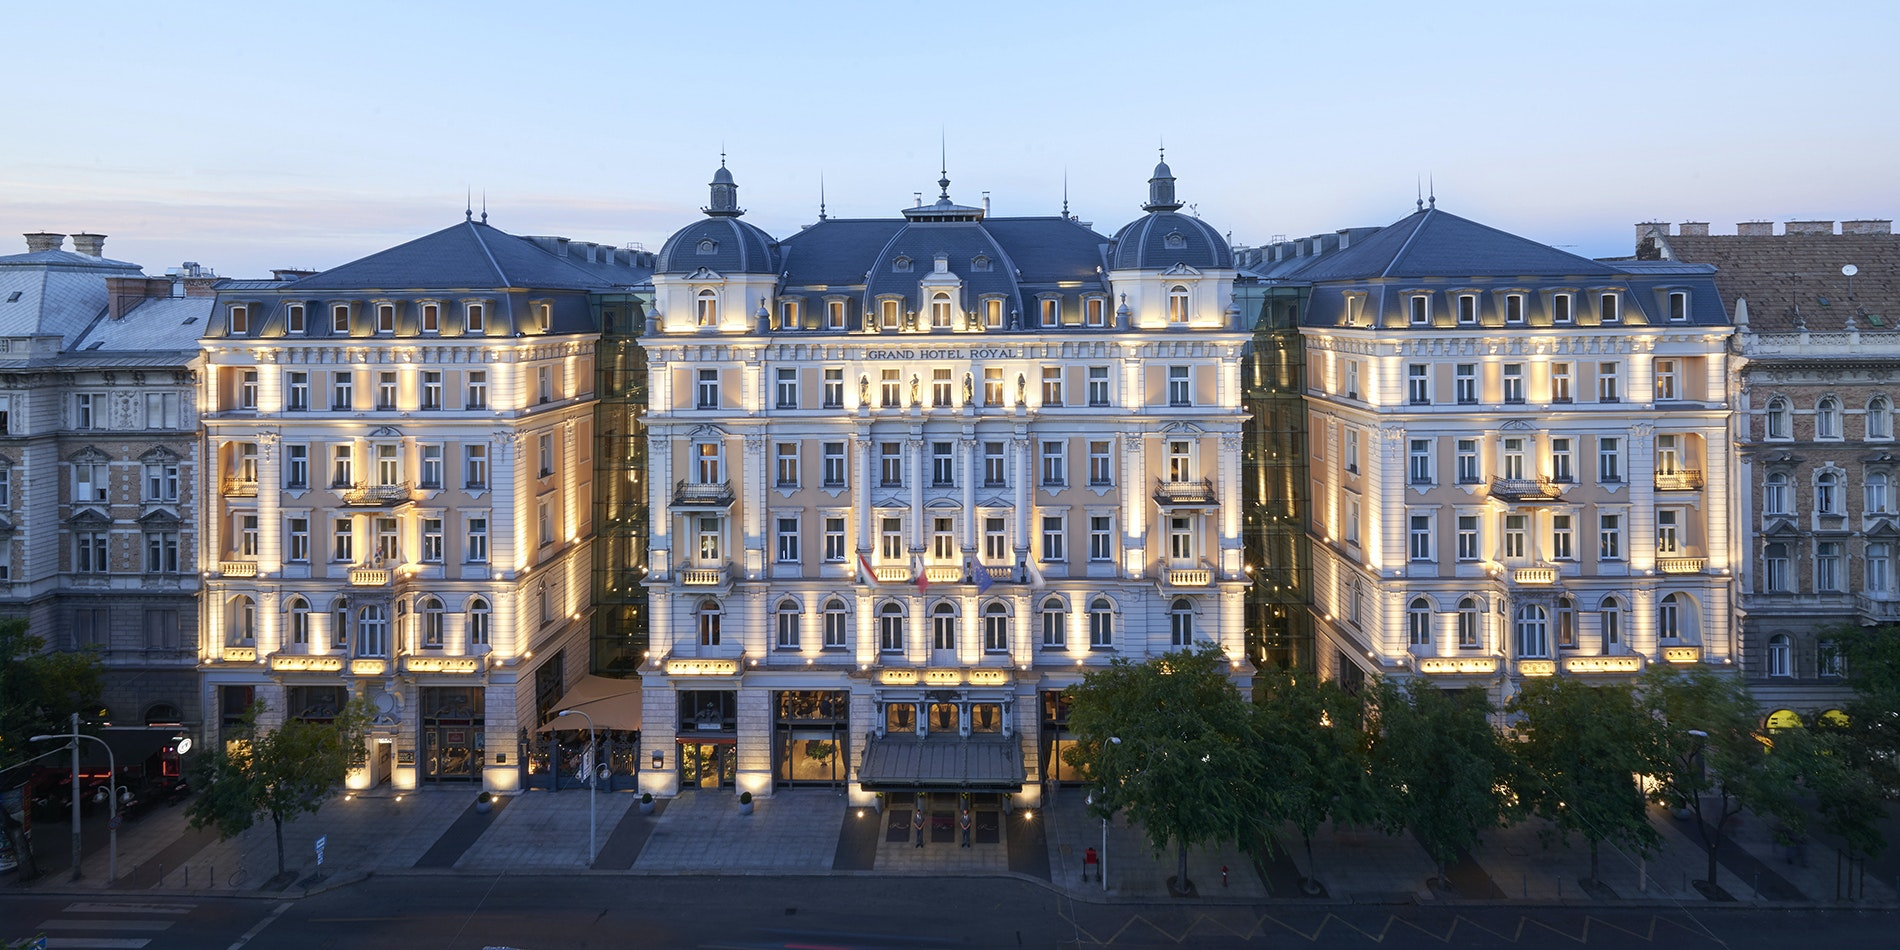 The Most Anticipated European Hotel Openings of 2019